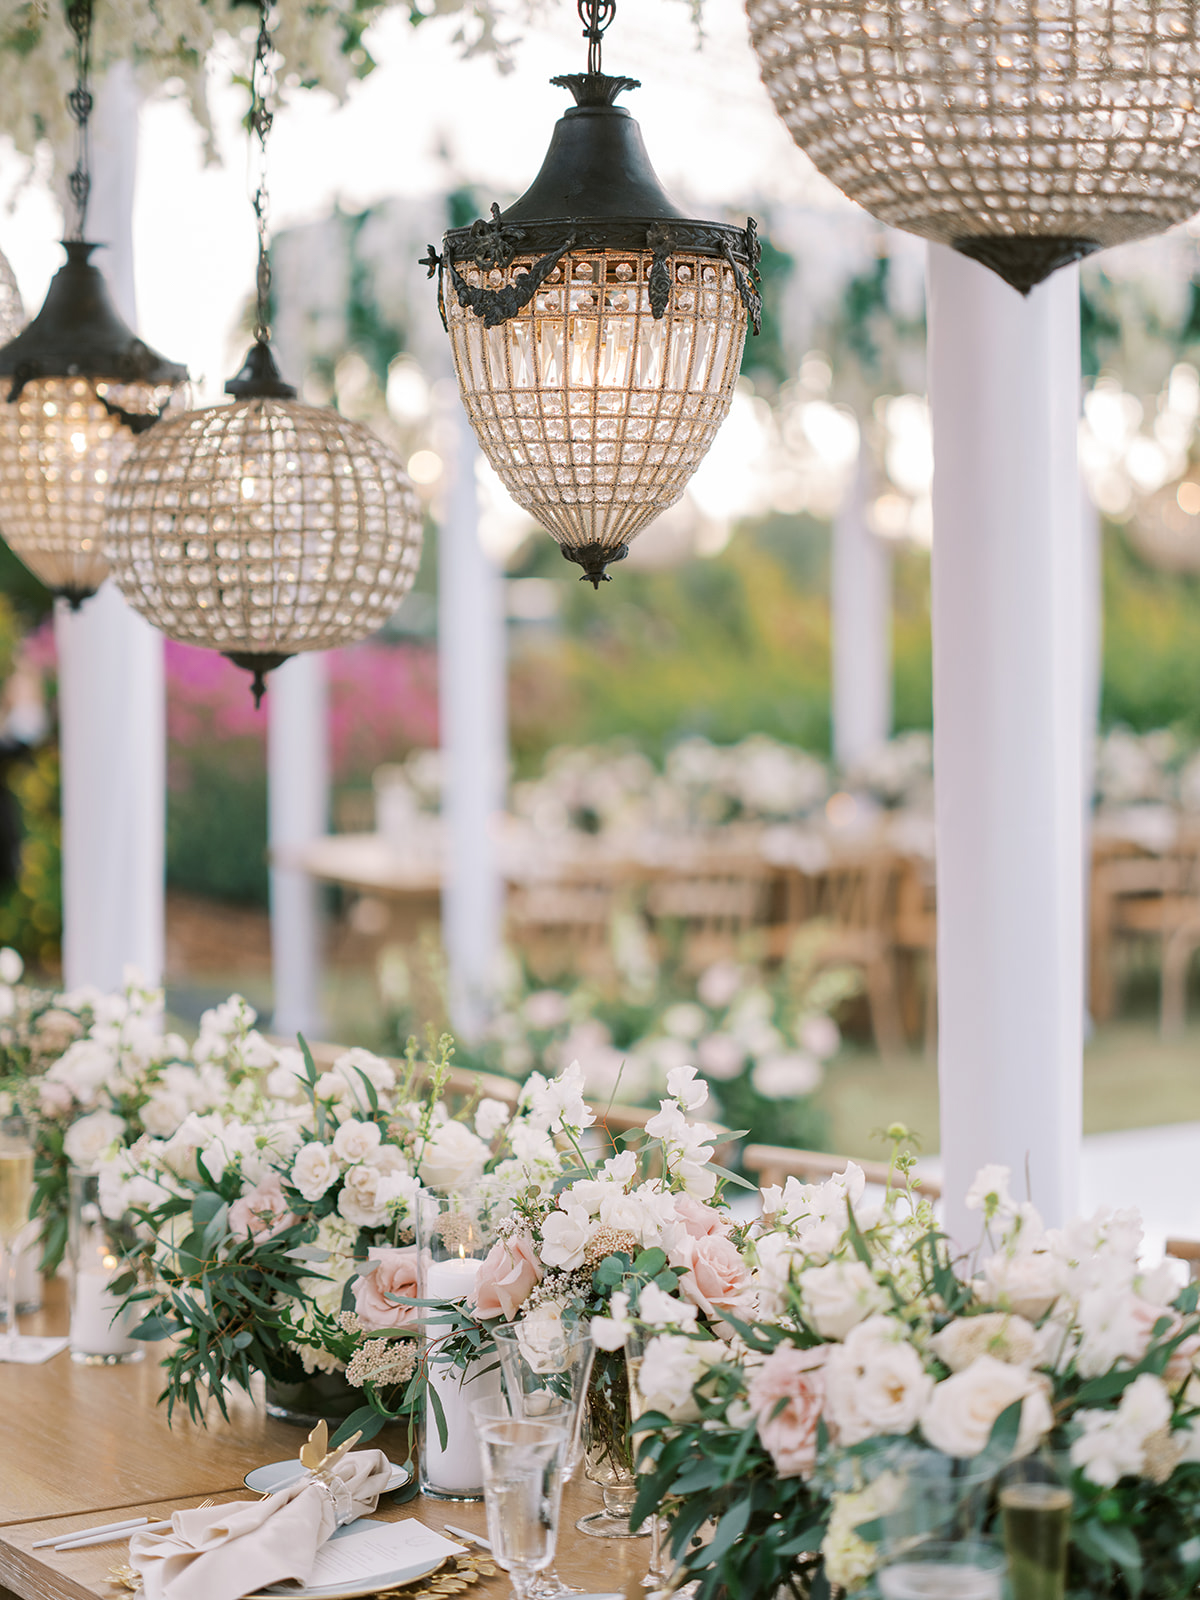 elegant lanterns hanging above wedding reception table with pink and white flowers